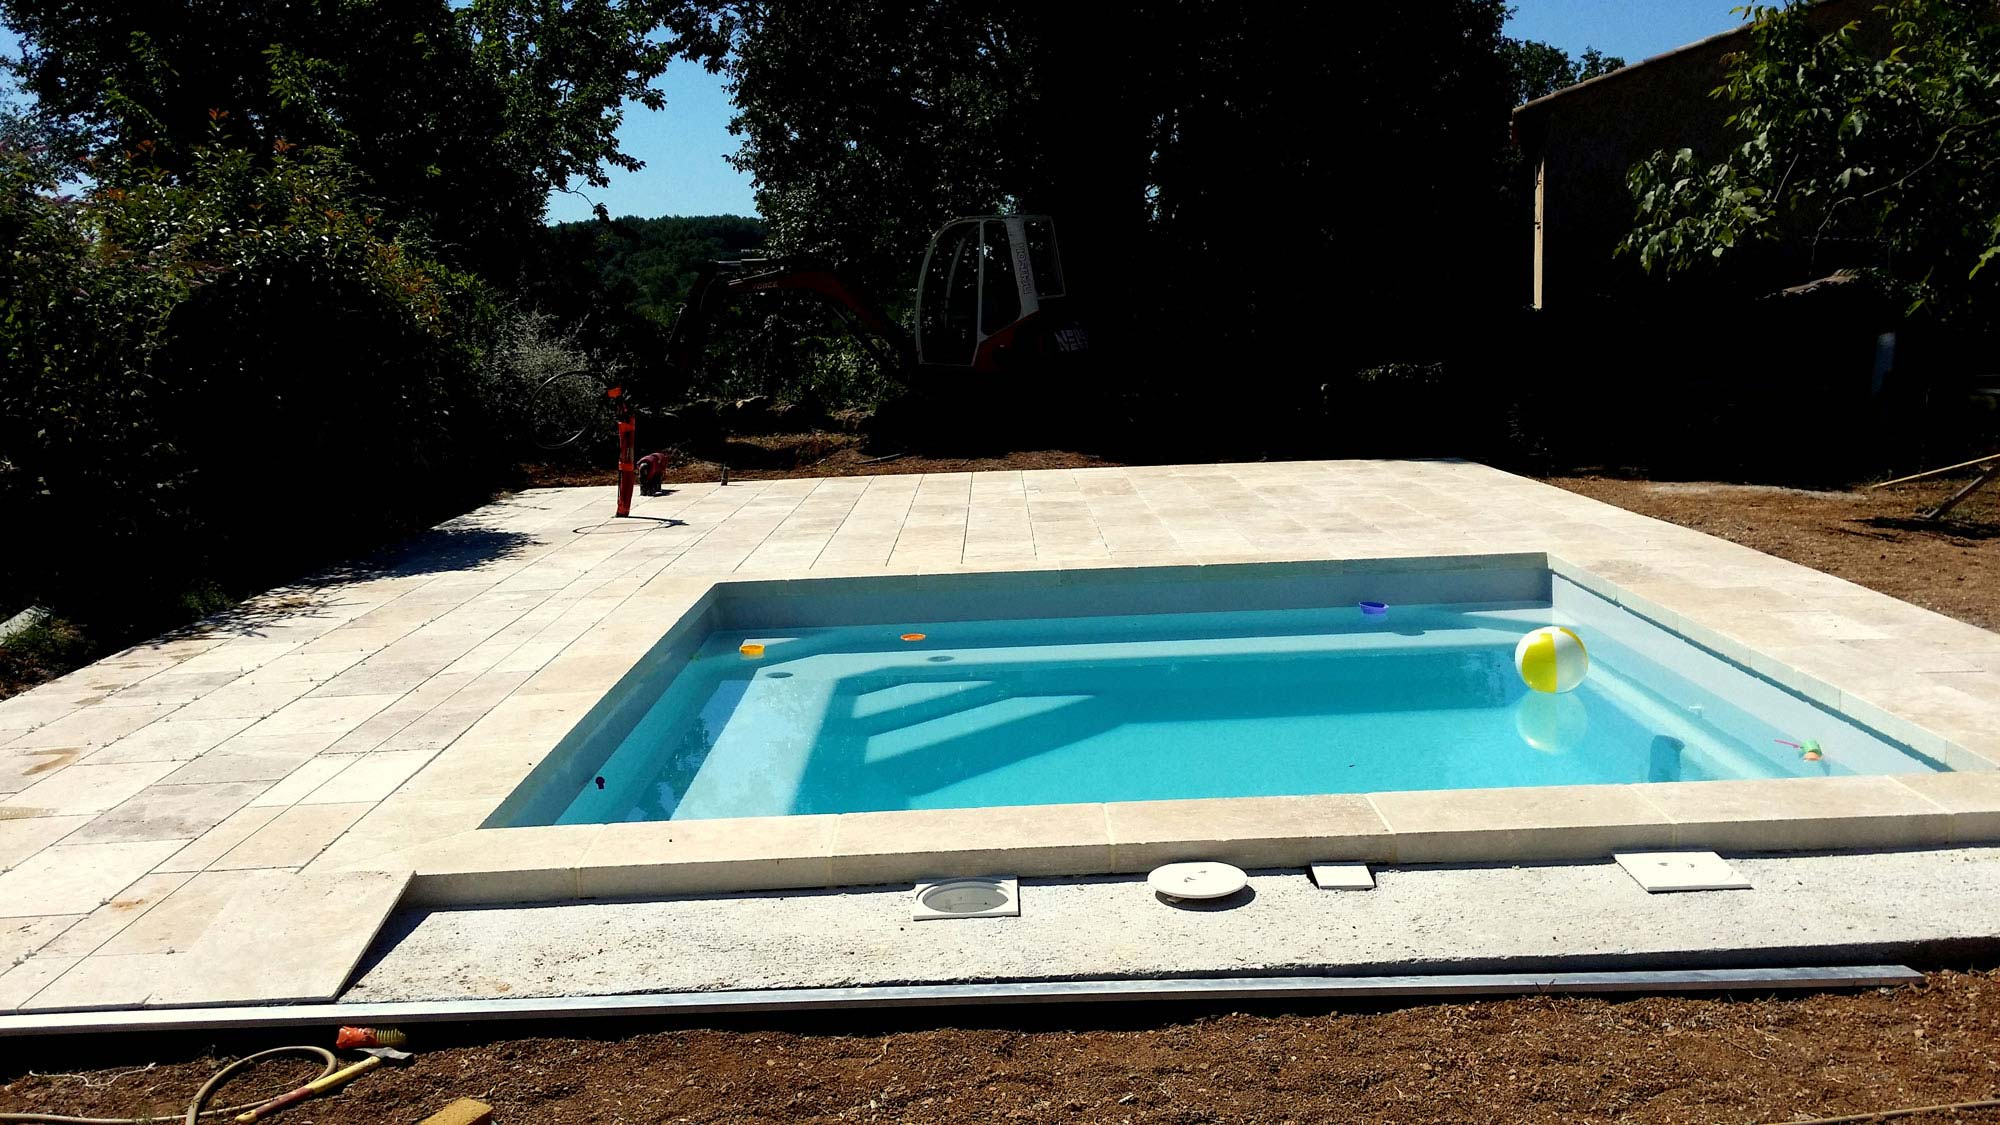 Duculty Kit Piscines : Construction De Piscines Dans Le Var ... tout Piscine Excel